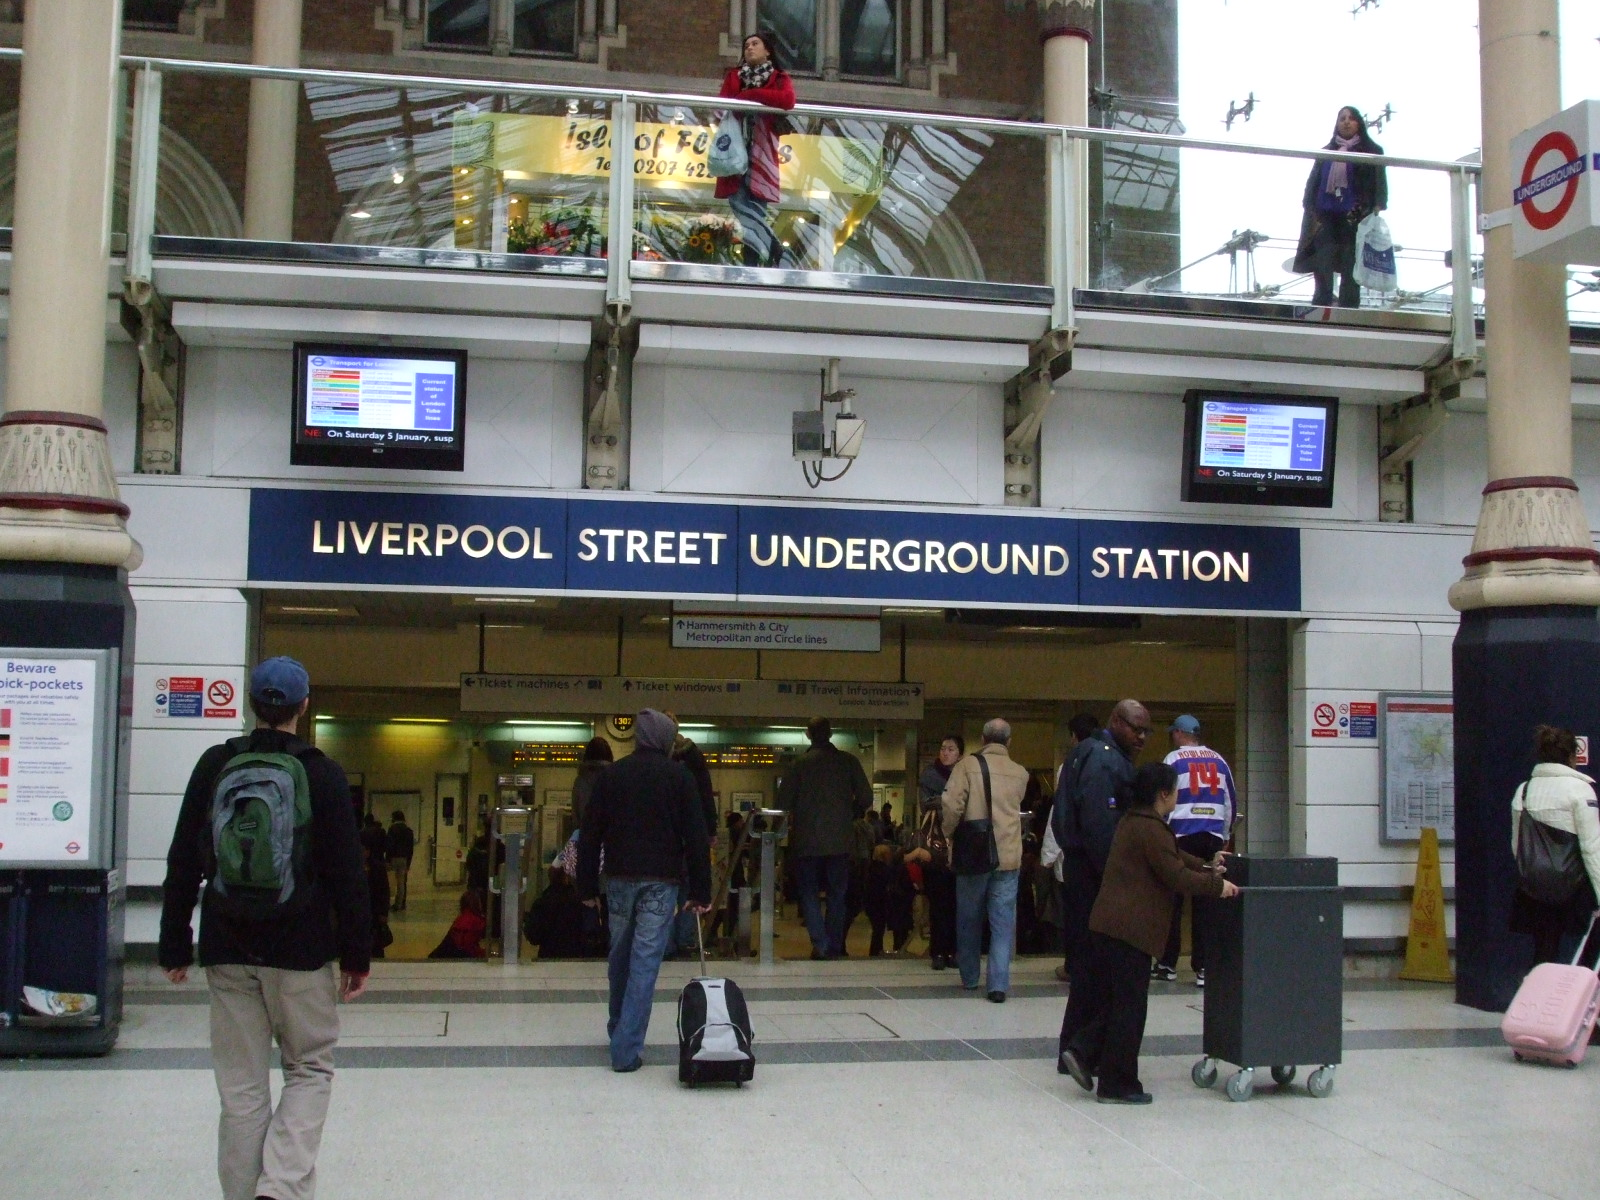 Ghosts of Liverpool Street Station Unearthed?